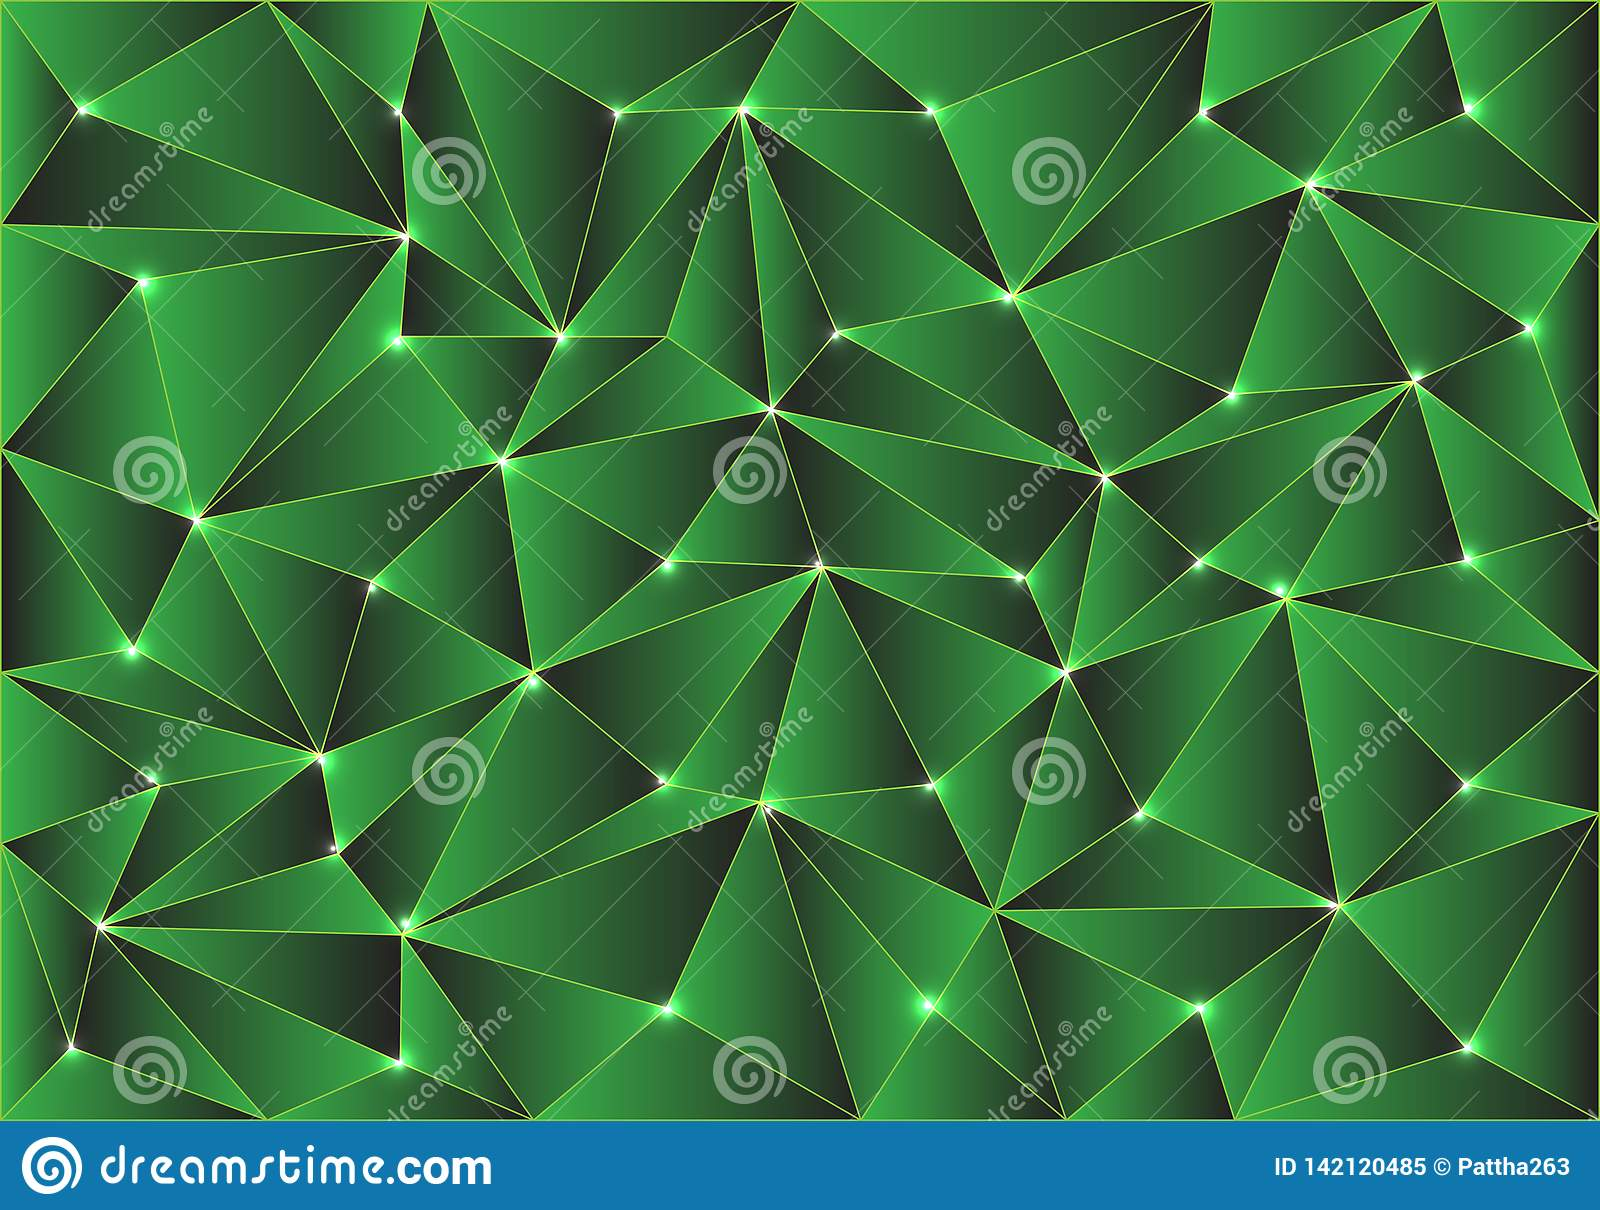 Abstract green glossy polygon pattern design modern background texture vector